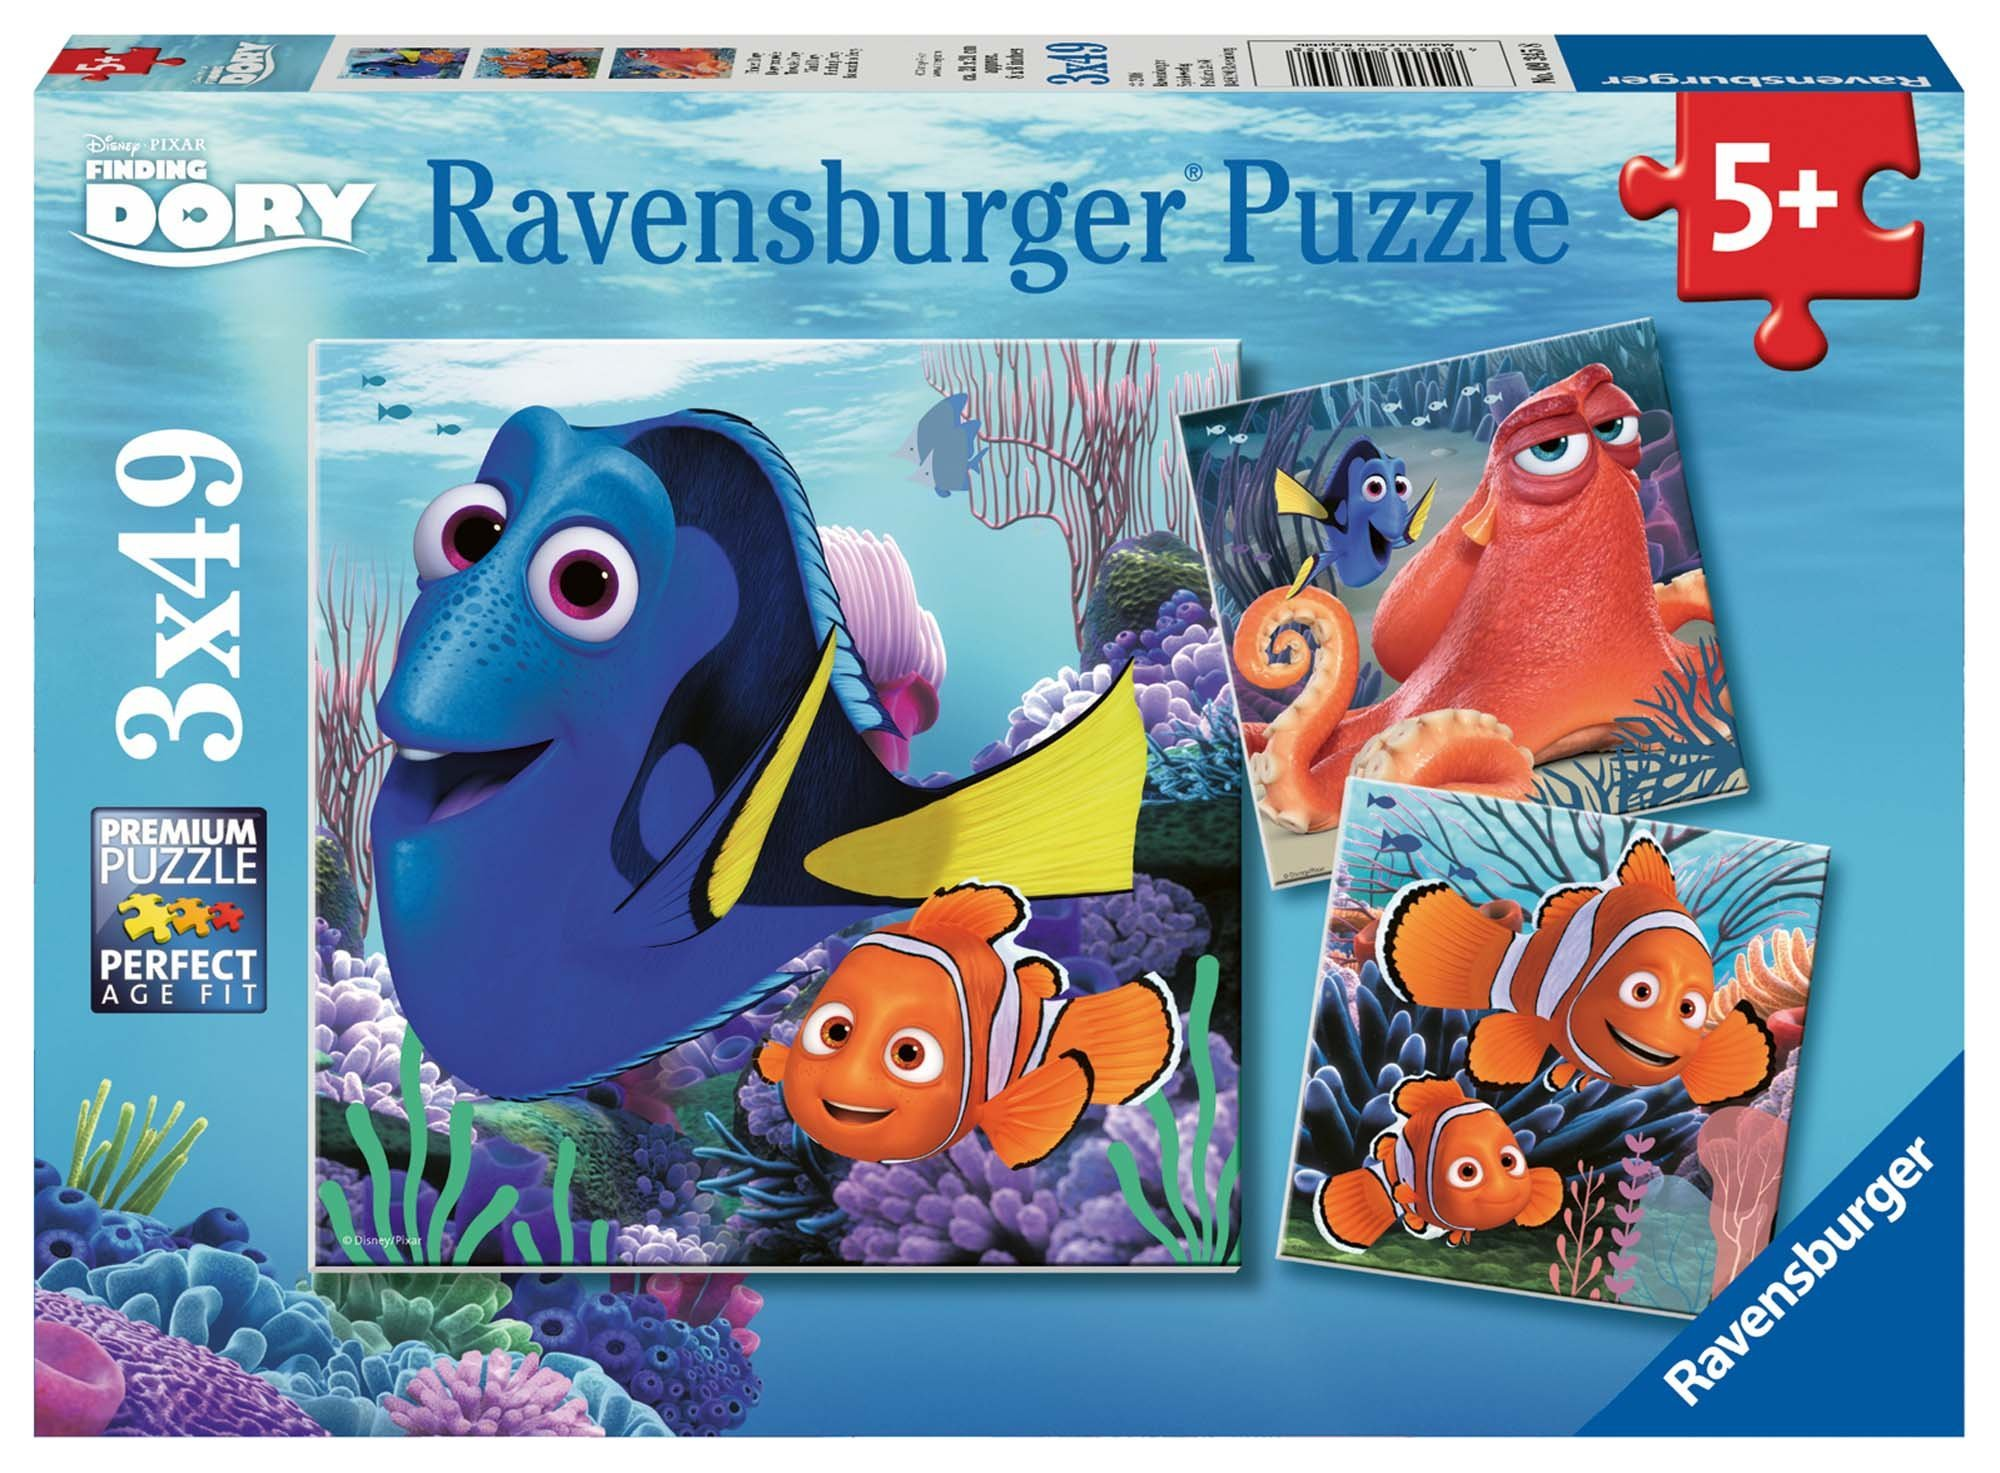 Ravensburger Disney Finding Dory Set of 3 49 Piece Jigsaw Puzzles for Kids – Every Piece is Unique, Pieces Fit Together Perfectly